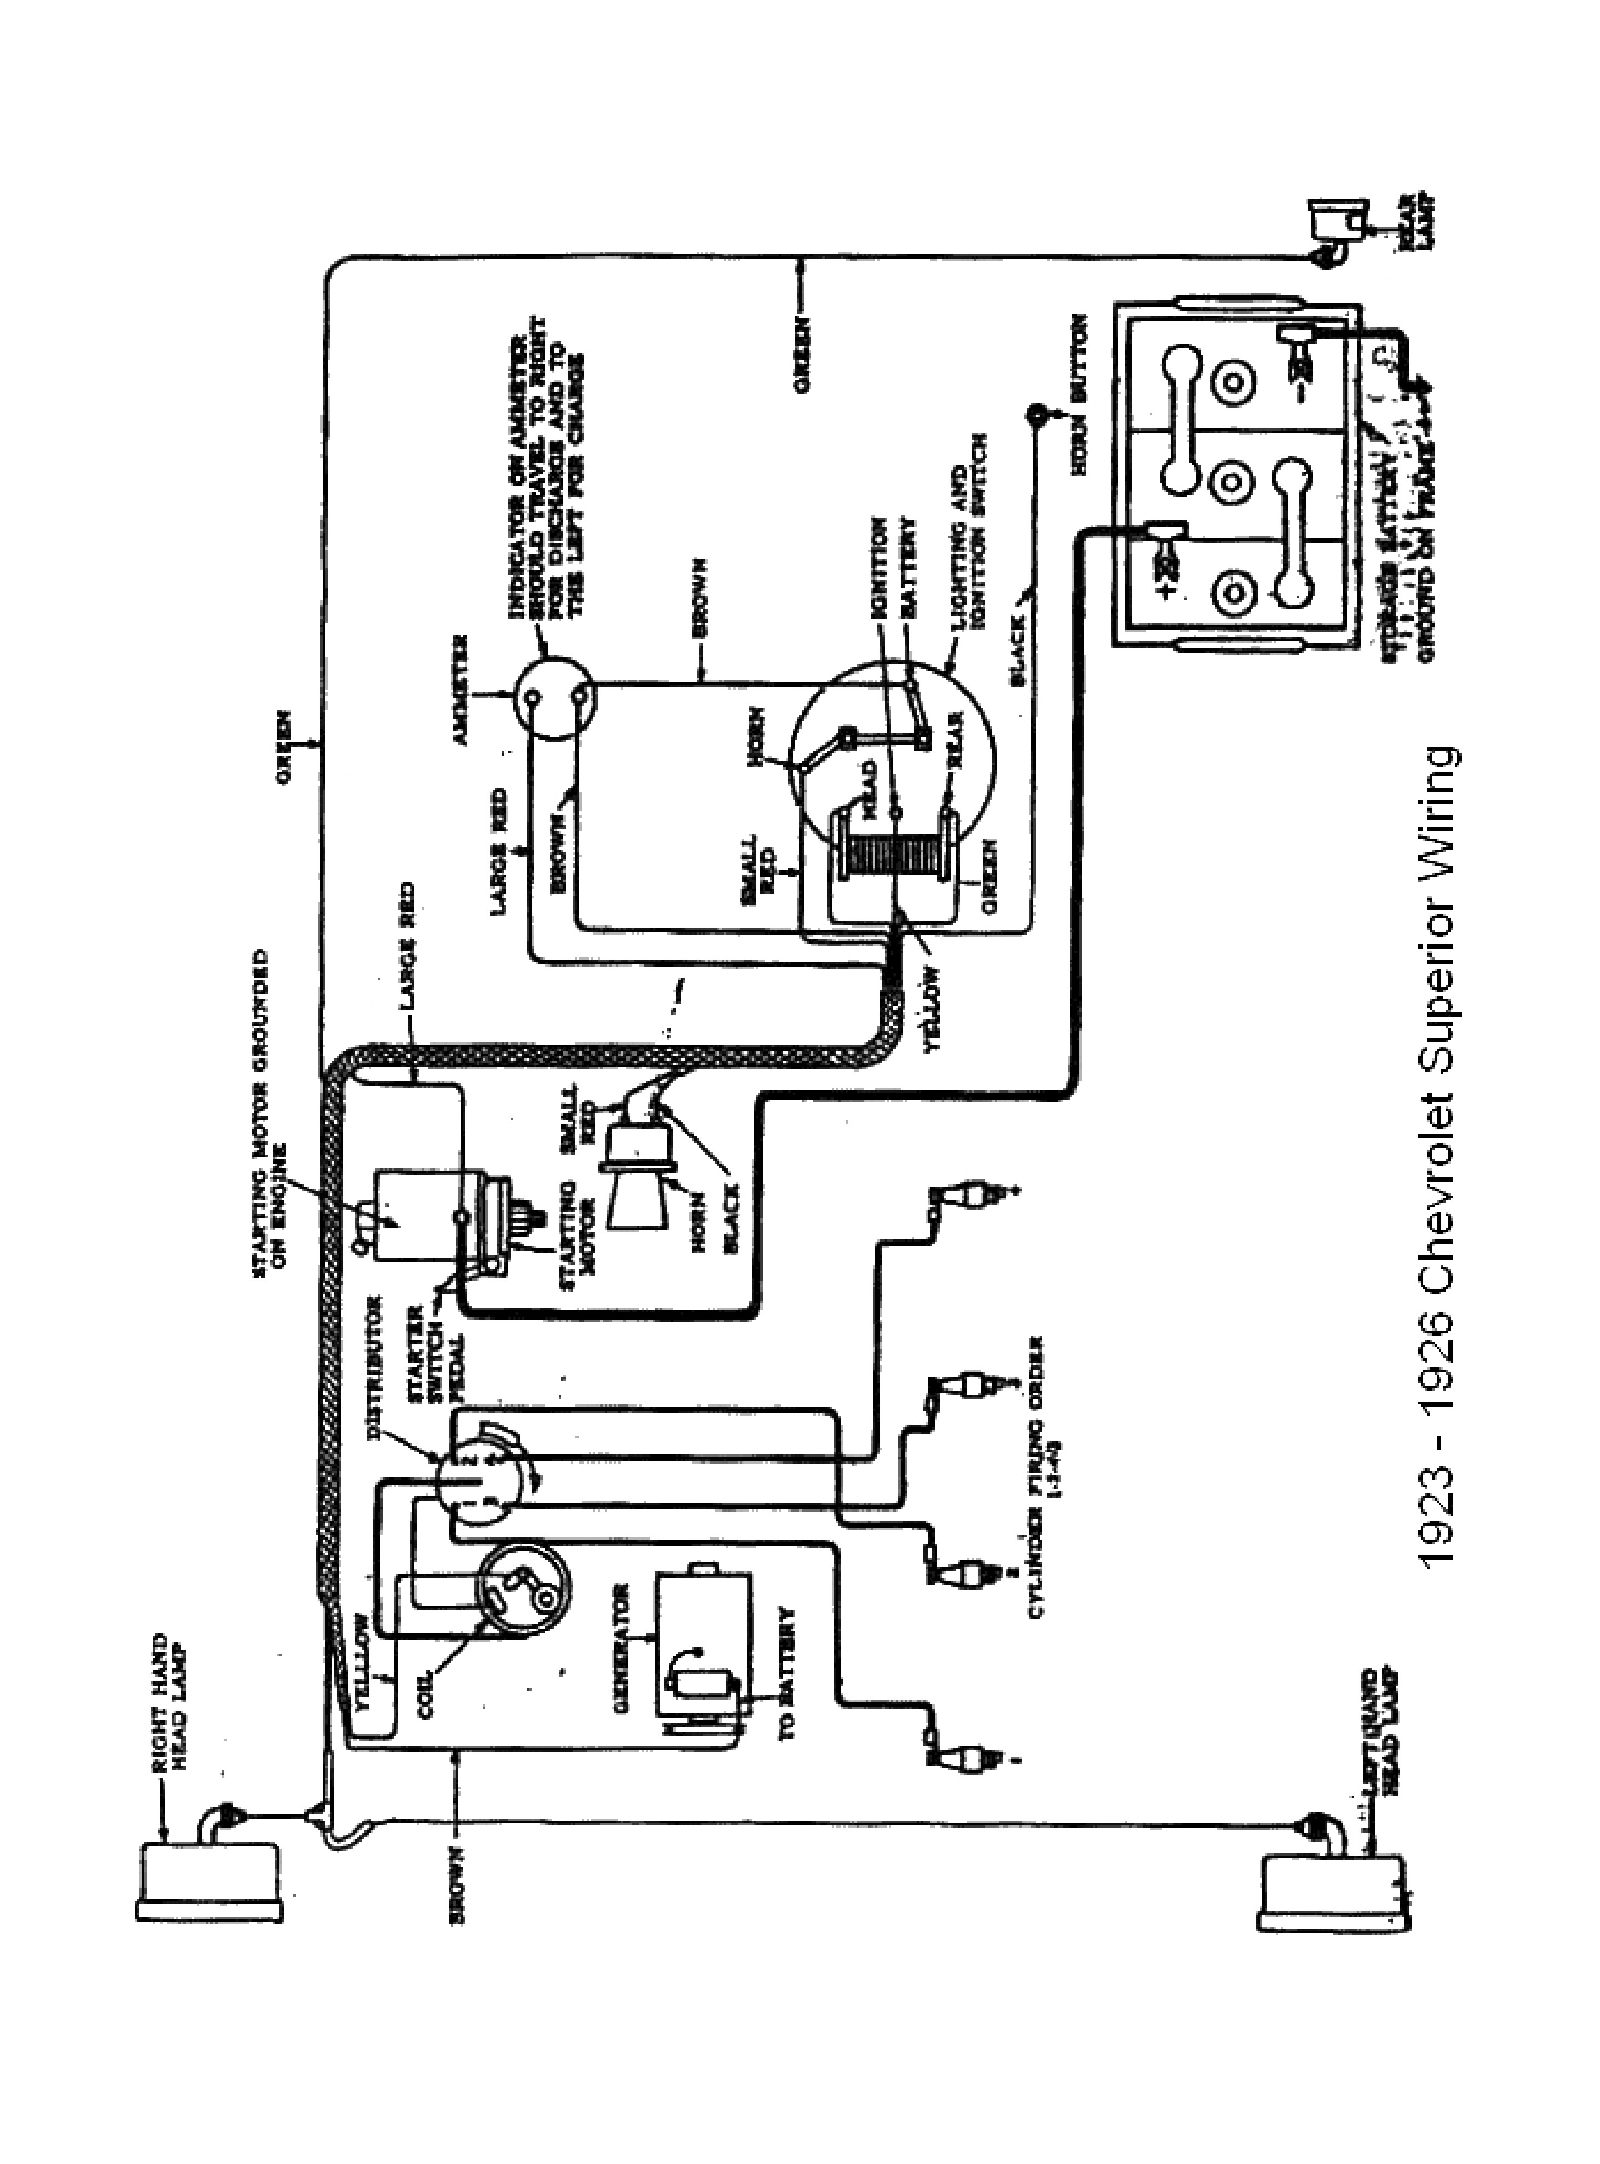 Chevy wiring diagrams 1923 superior model · 1923 superior model 1926 chevrolet wiring diagram